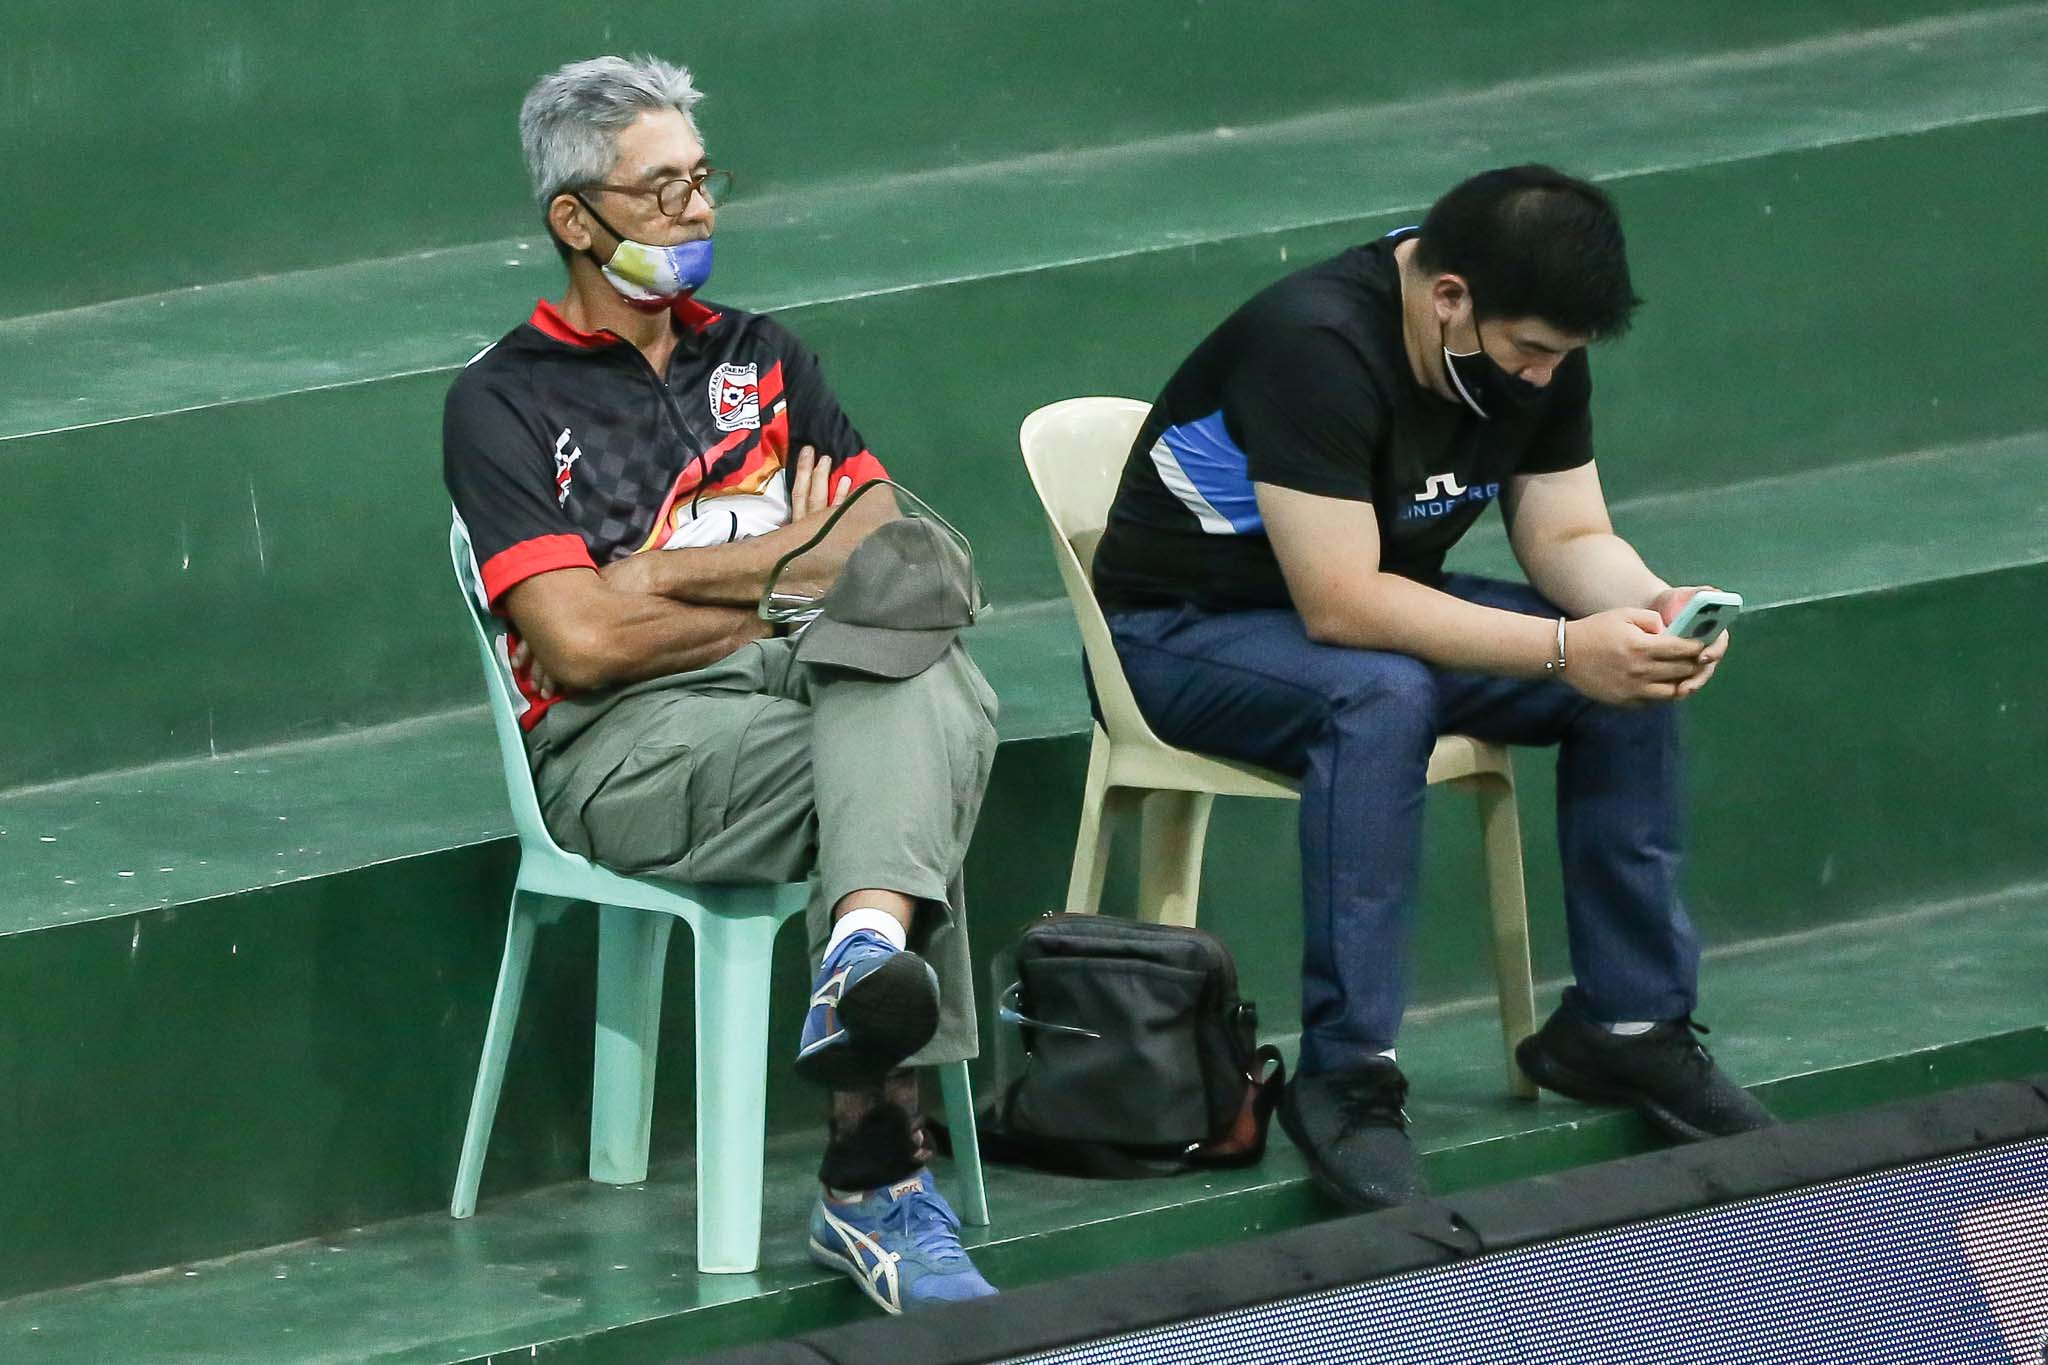 2021-PVL-Open-Conference-Choco-Mucho-vs-BaliPure-Fritz-Gaston Ponggay Gaston plays inspired volleyball as dad Fritz visits PVL bubble News PVL Volleyball  - philippine sports news